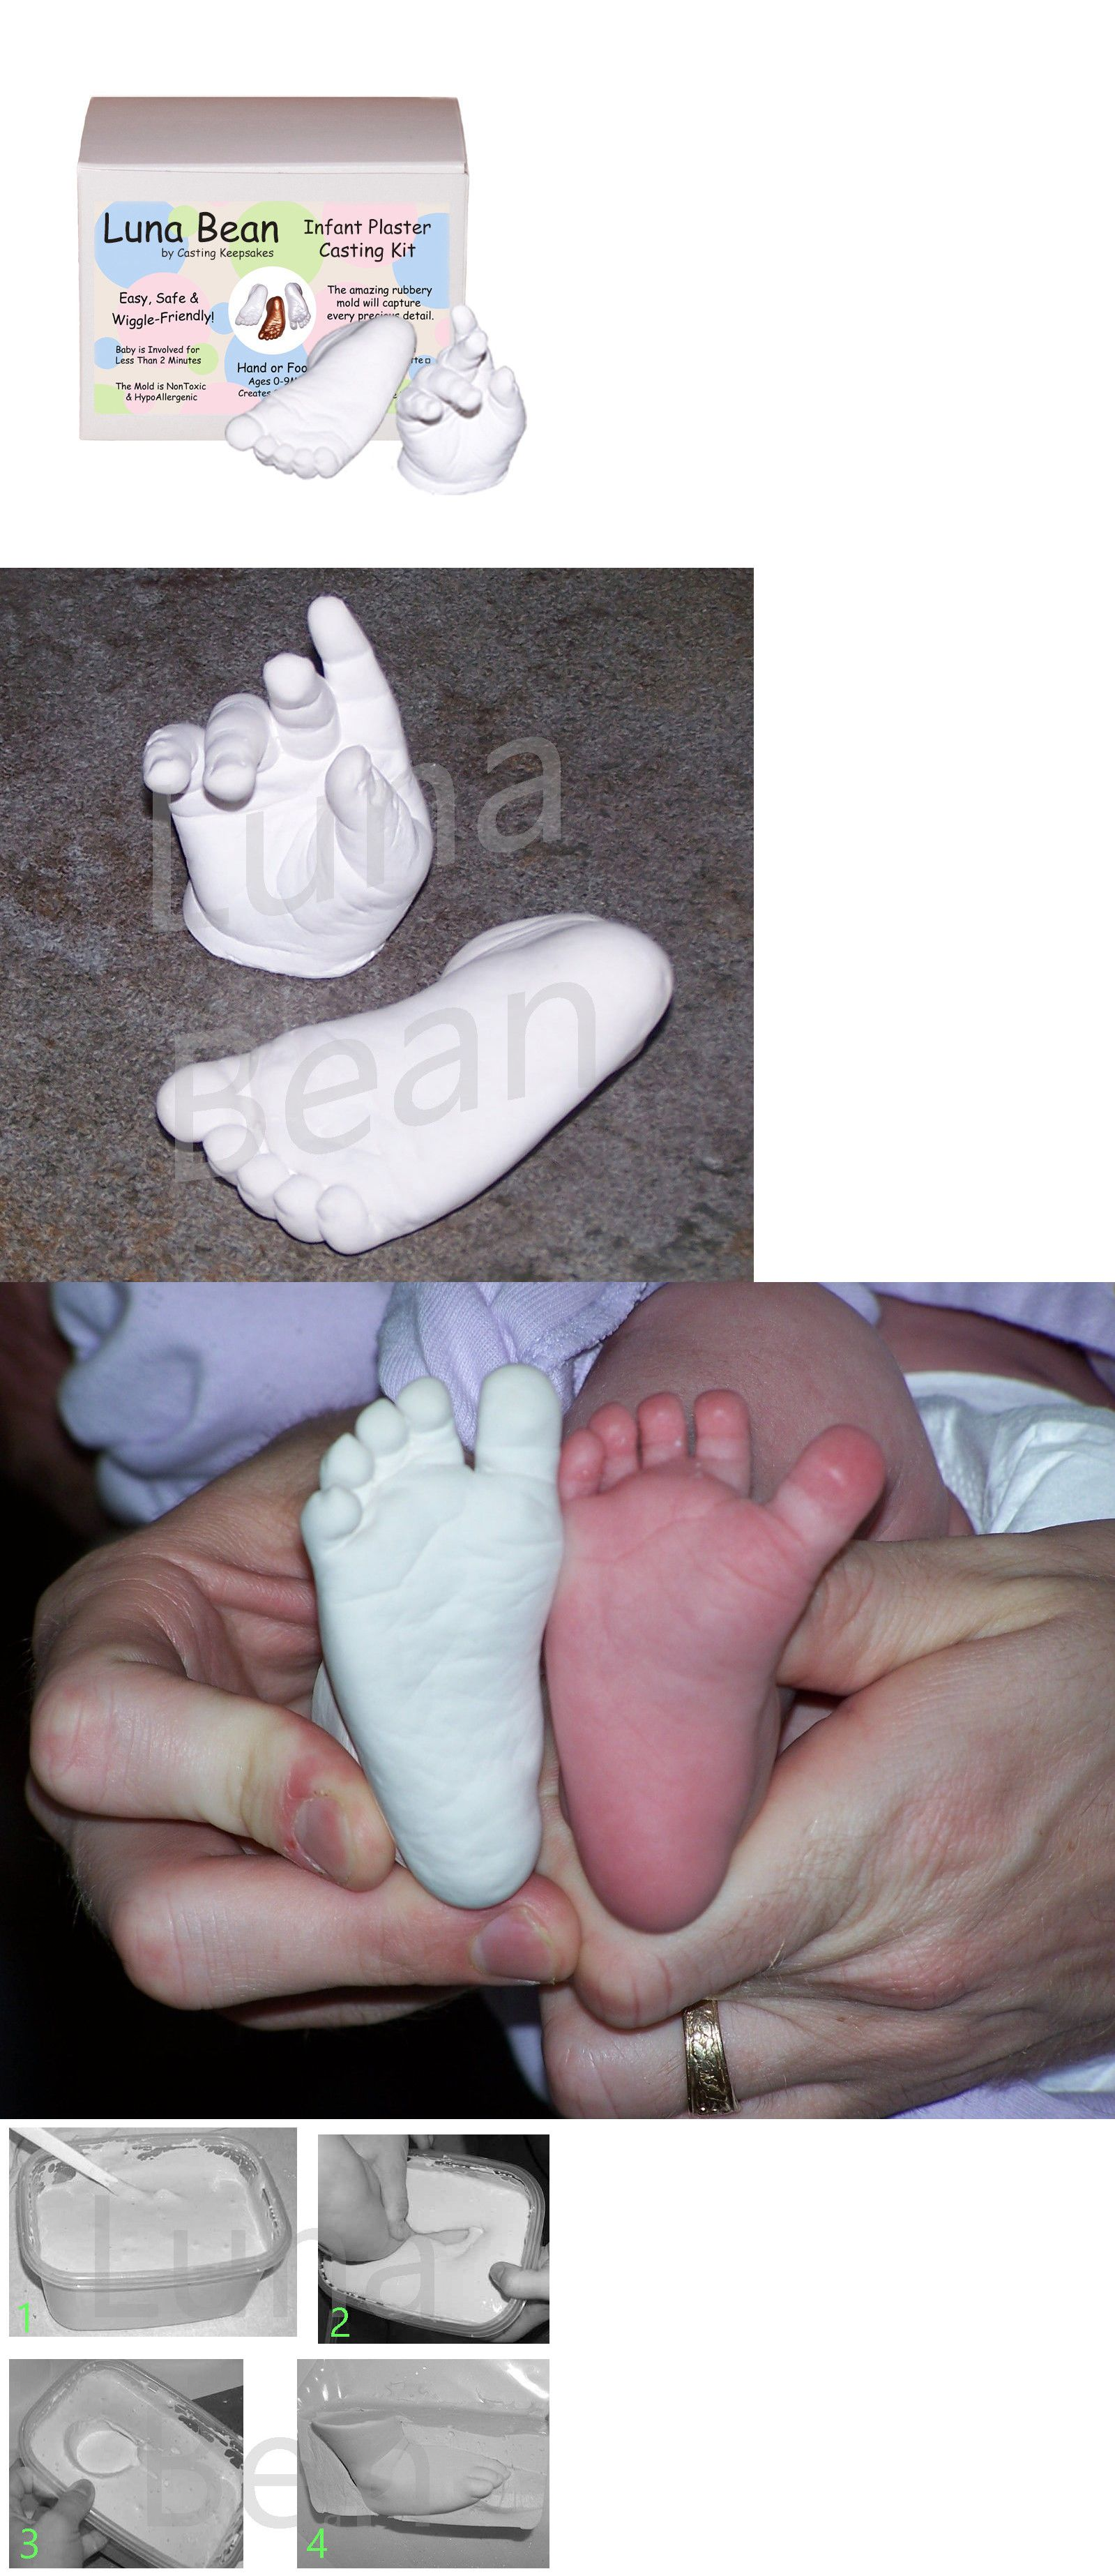 Moldmaking and Casting Materials 153913: Luna Bean Infant